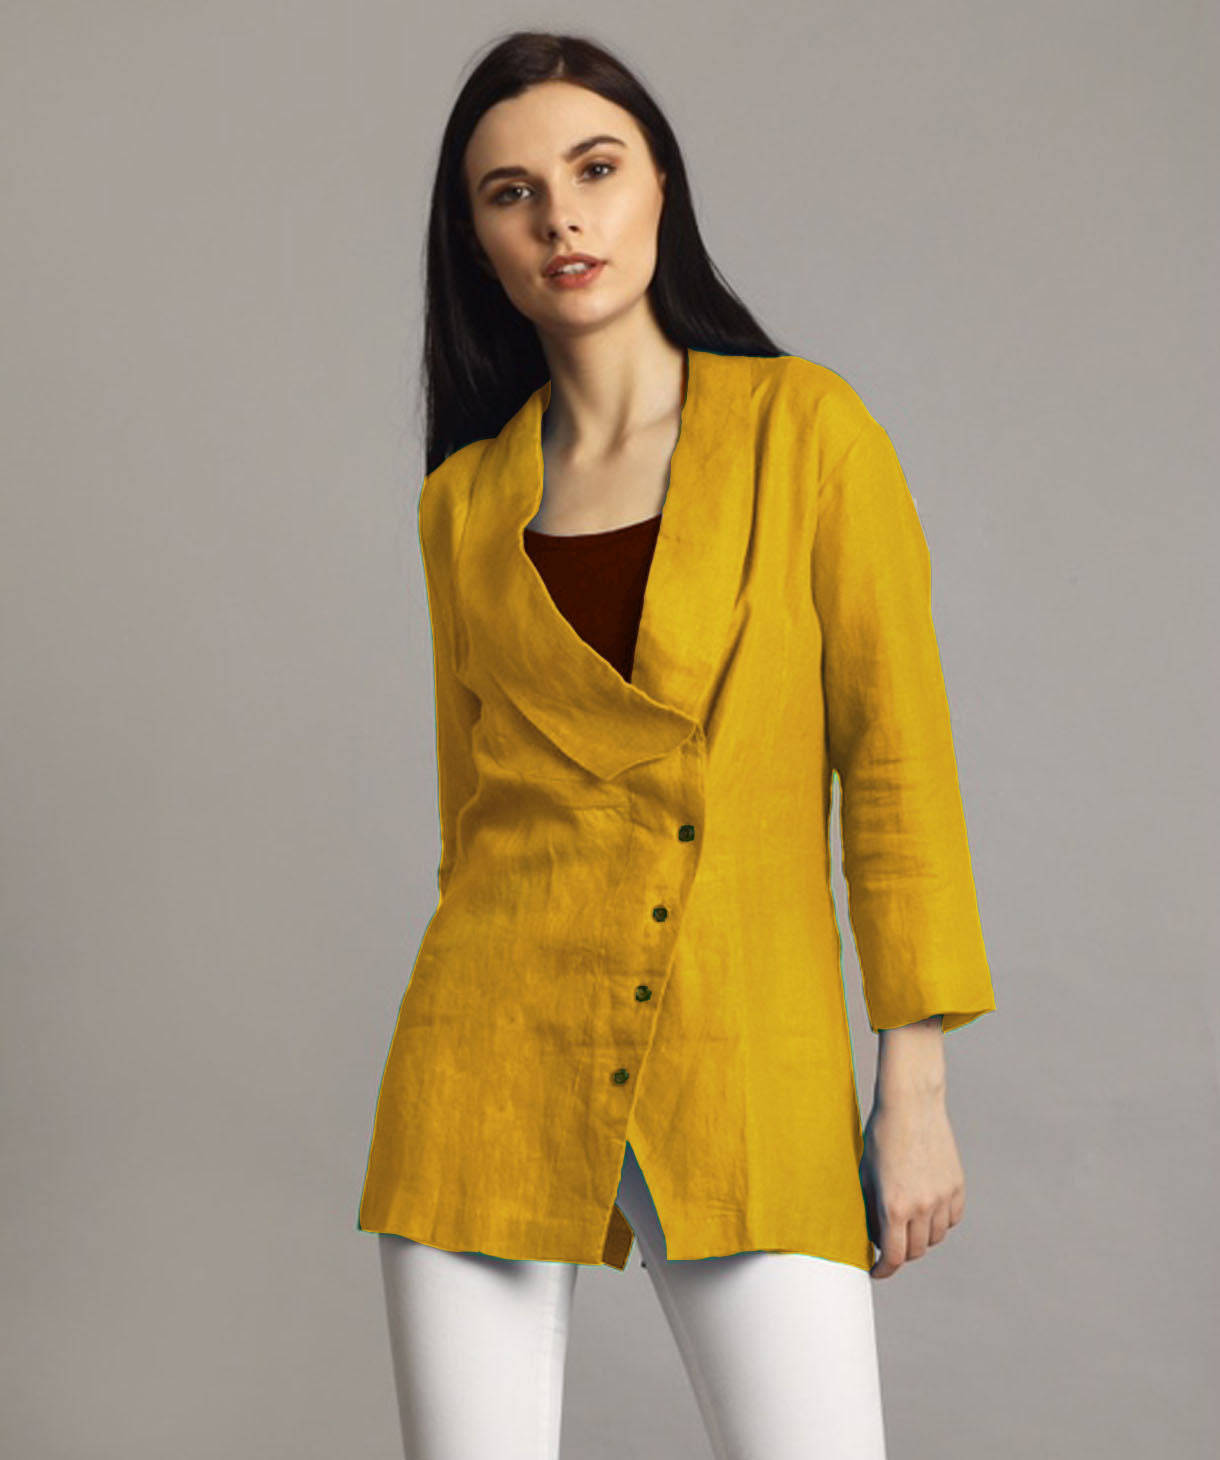 Uptownie Plus Mustard Linen Jacket Style Tunic 1 clearance sale